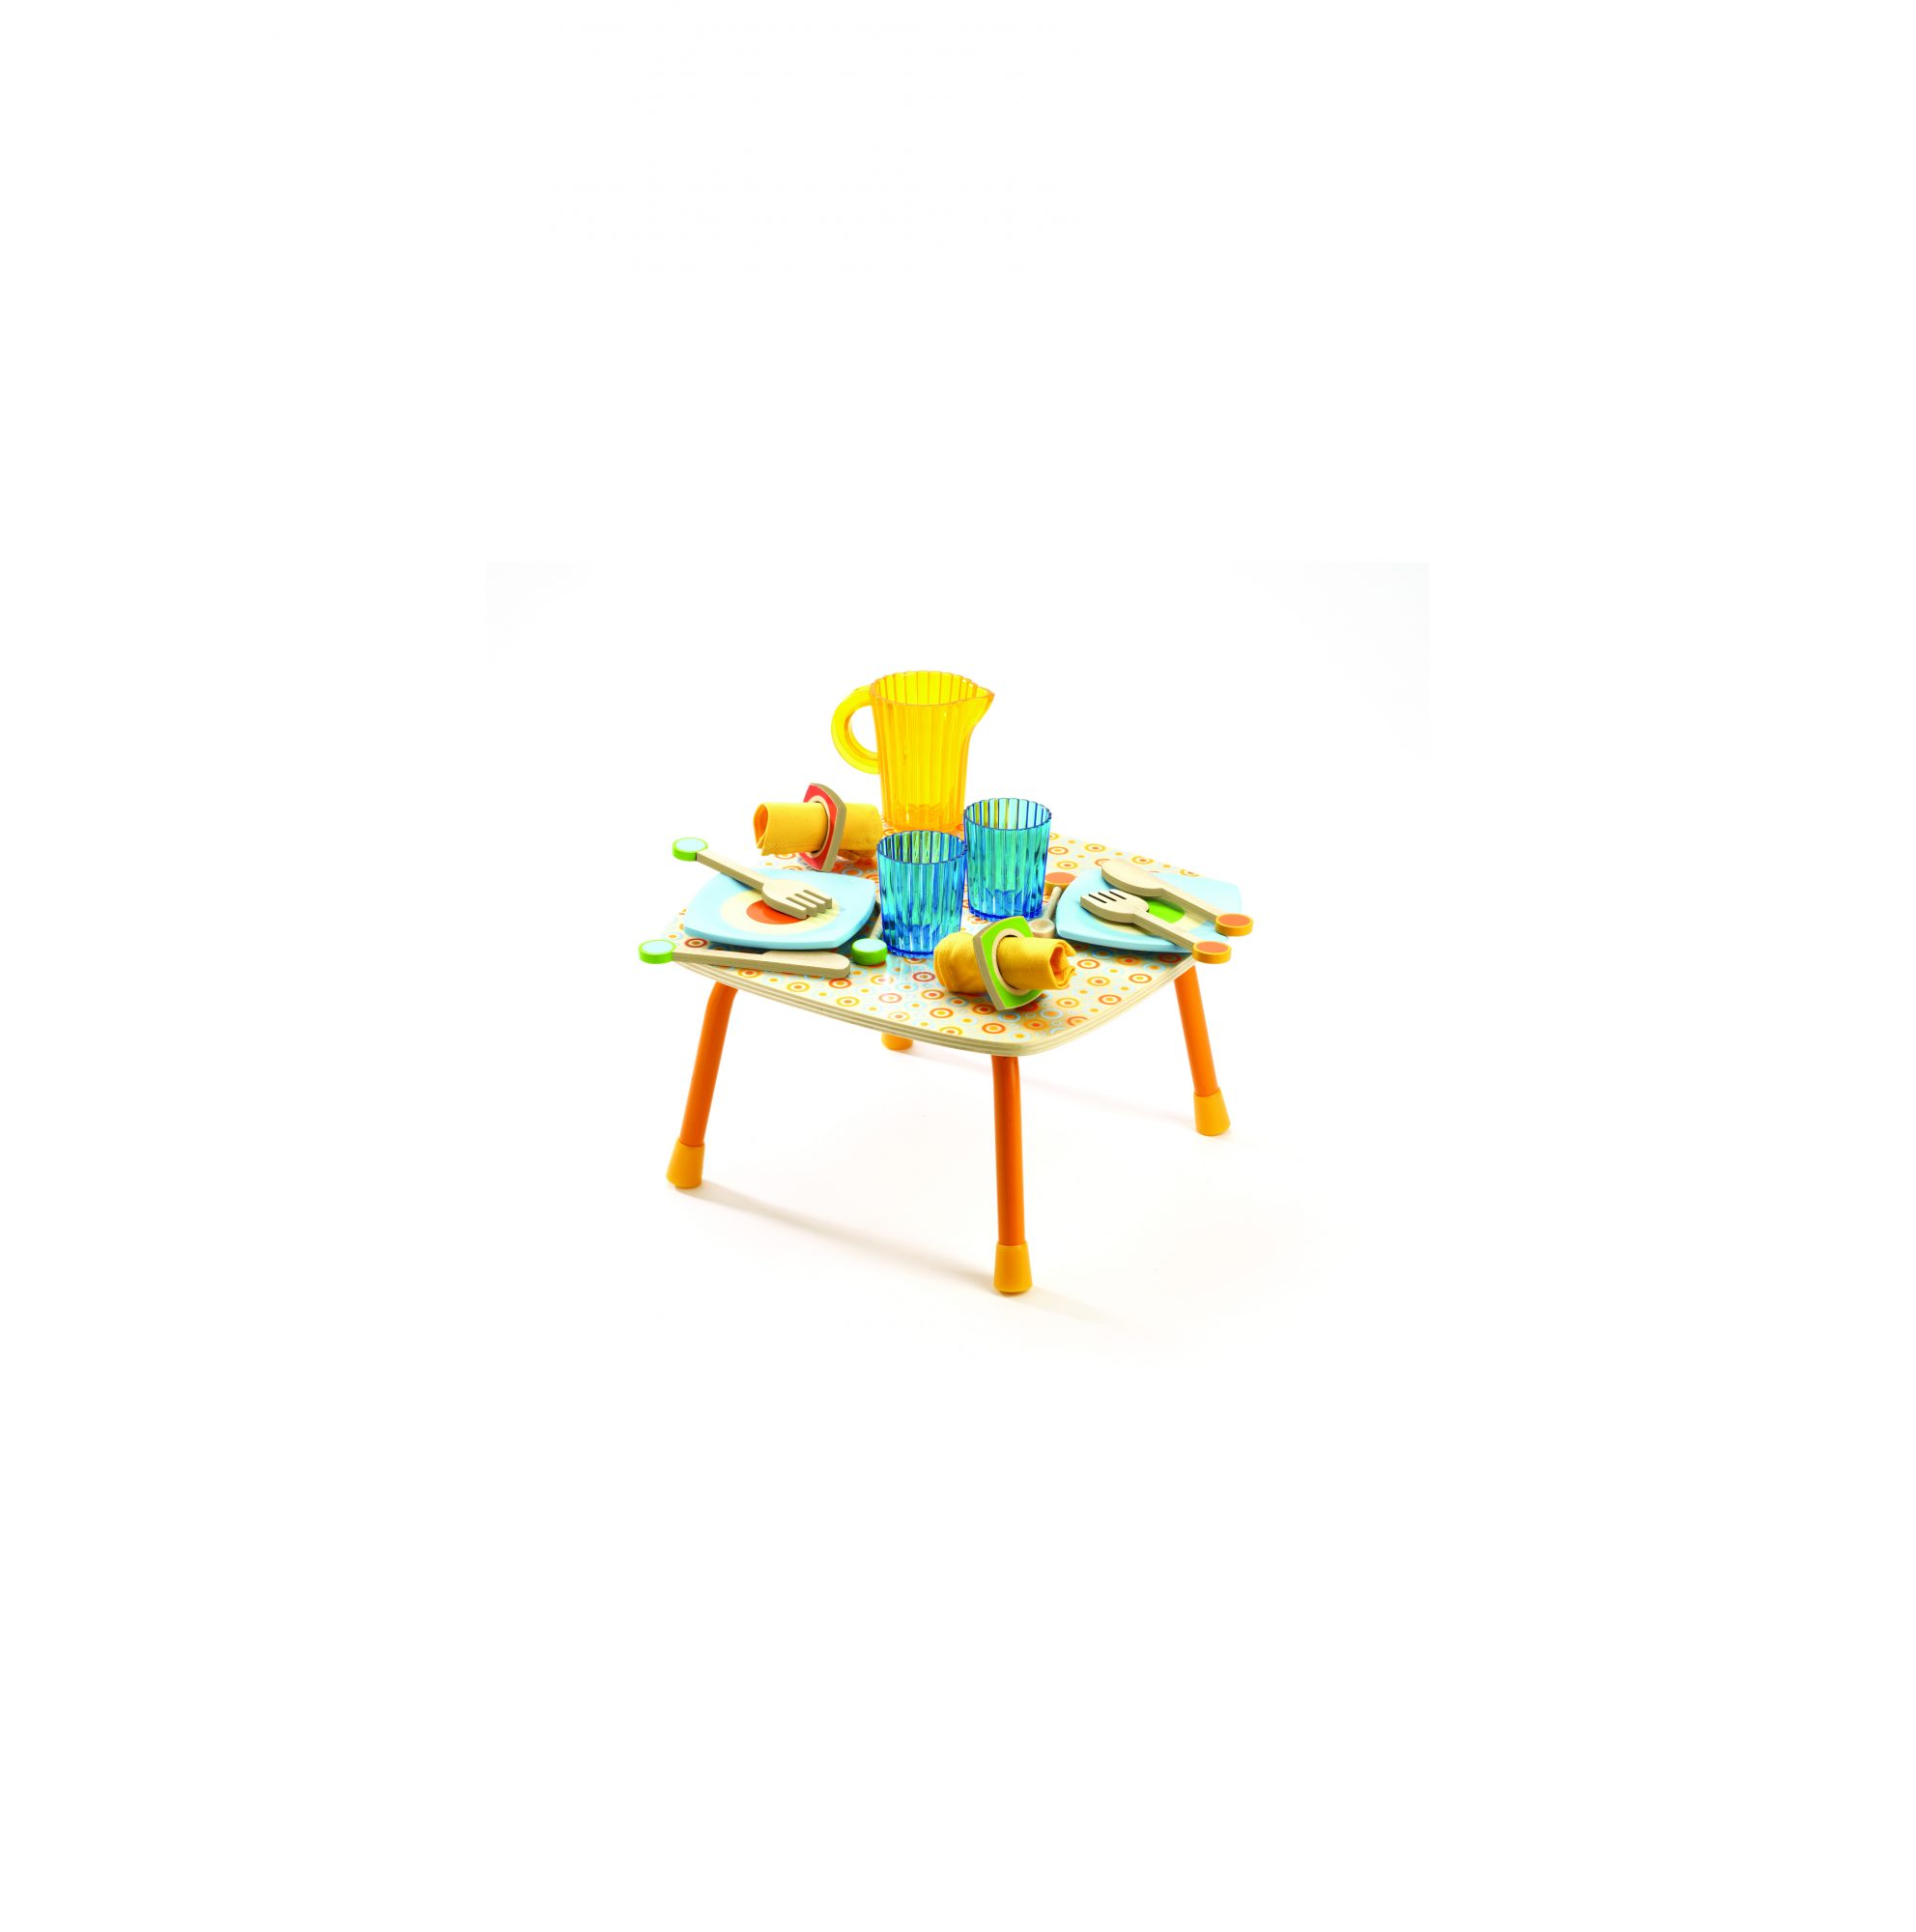 Lunch Table Toy Set